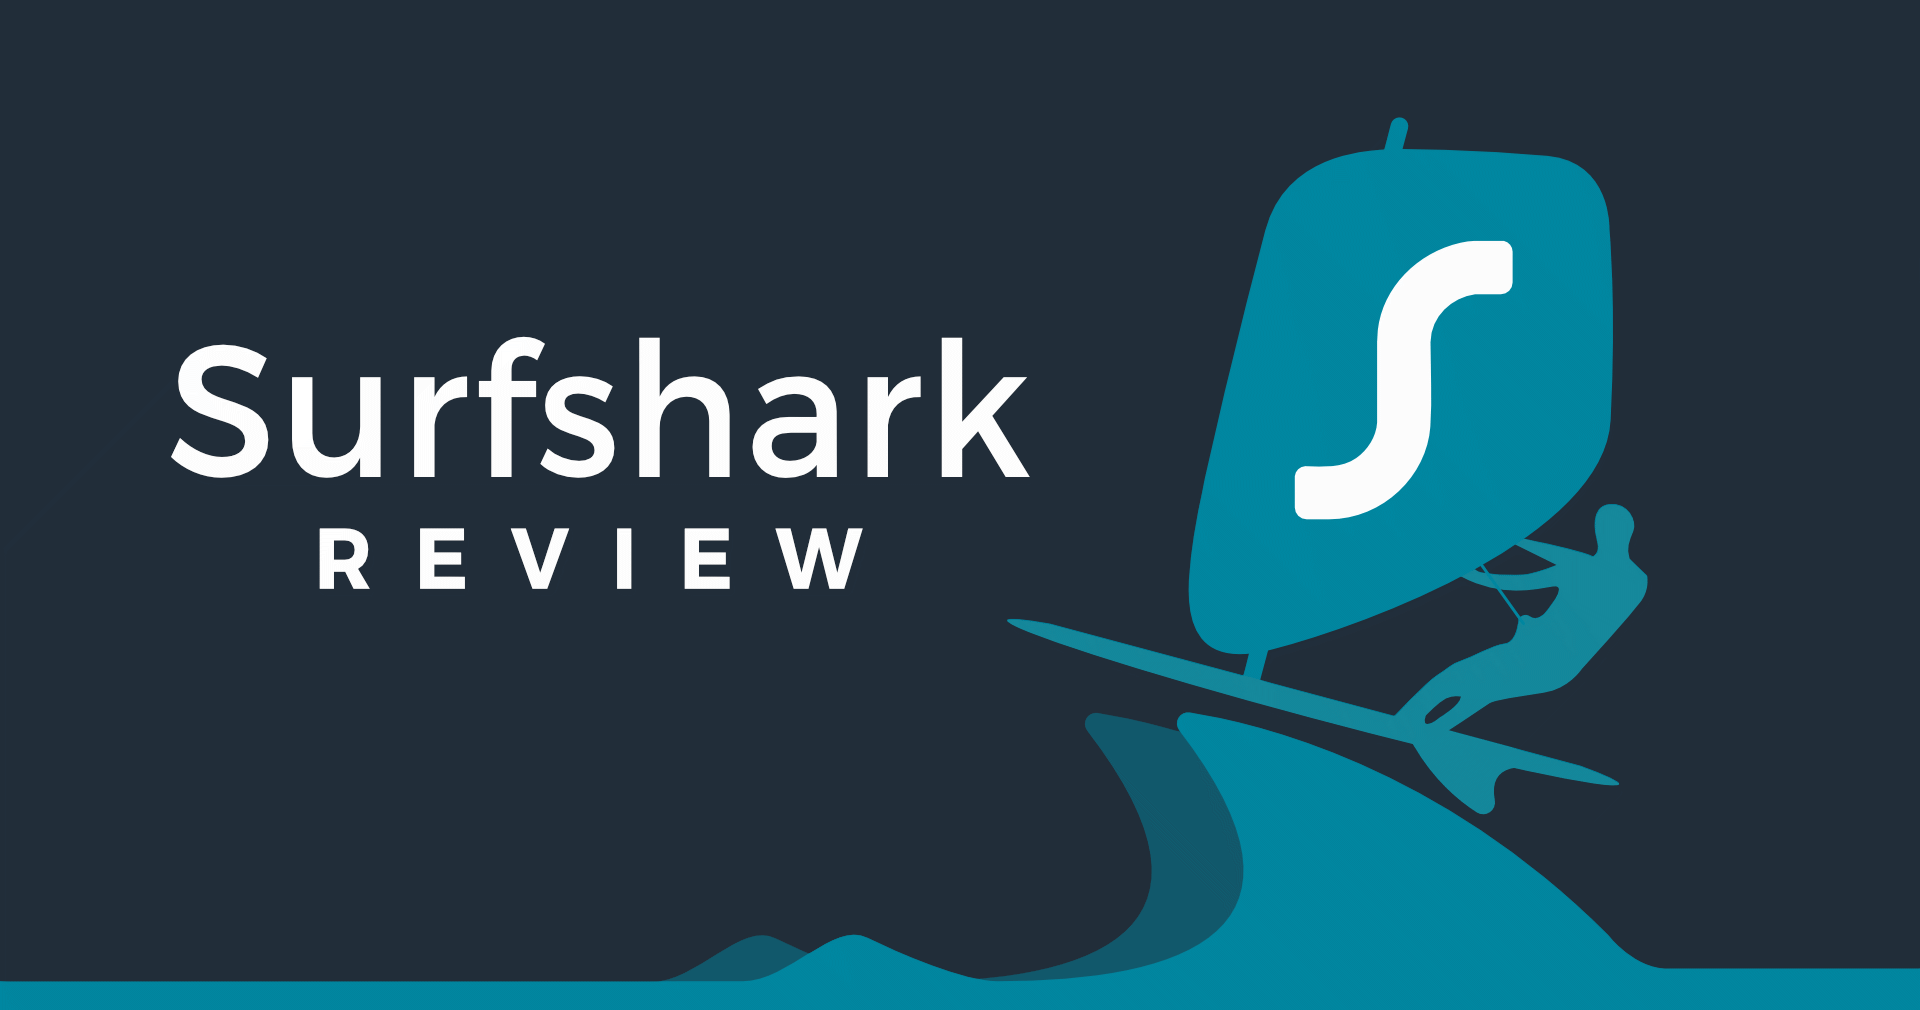 Surfshark Review: How Secure Is It?